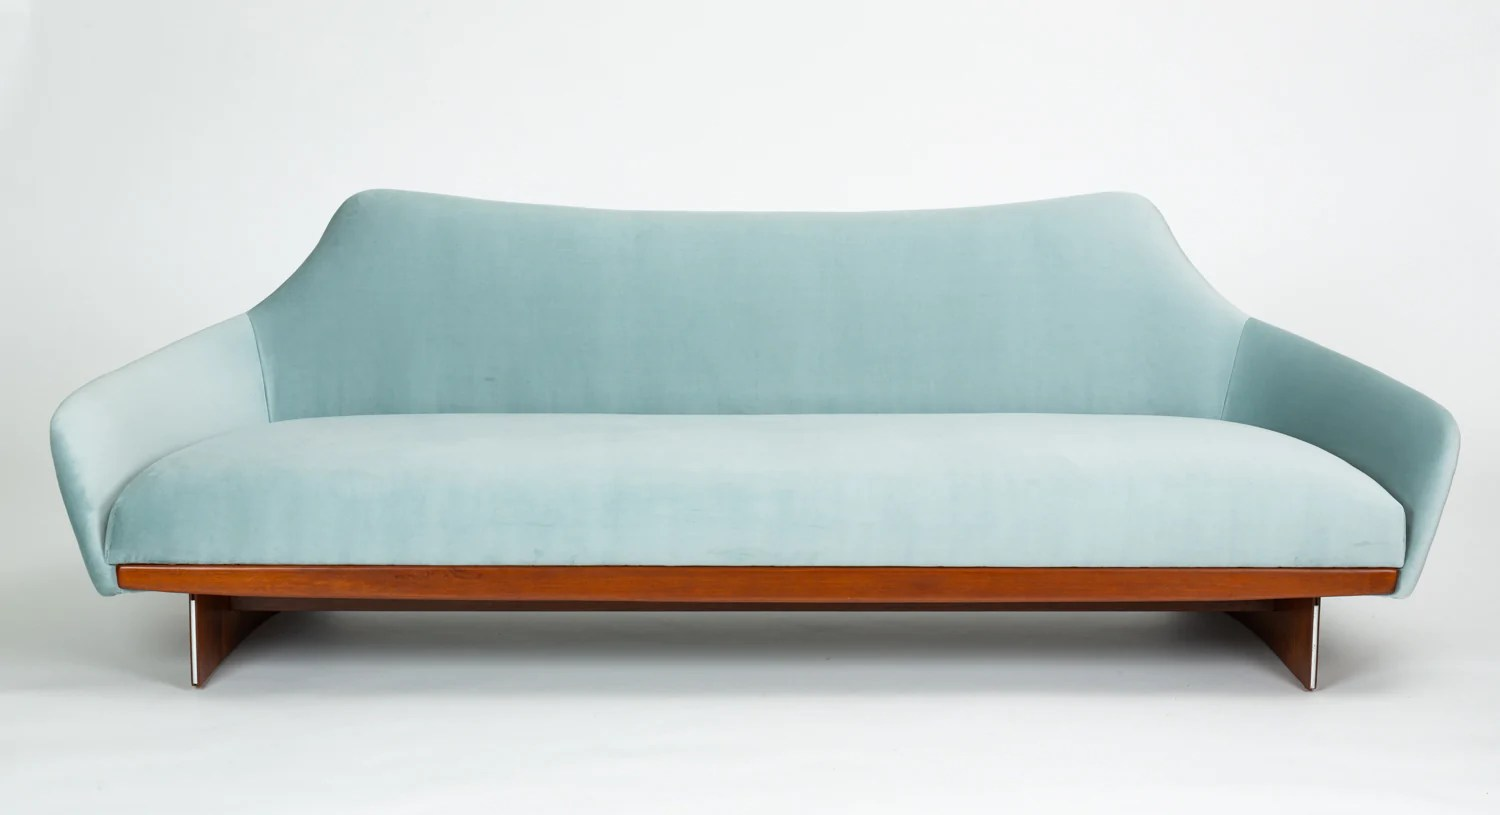 Made Sofa Velvet American Made Gondola Sofa In Ice Blue Velvet With Walnut Details